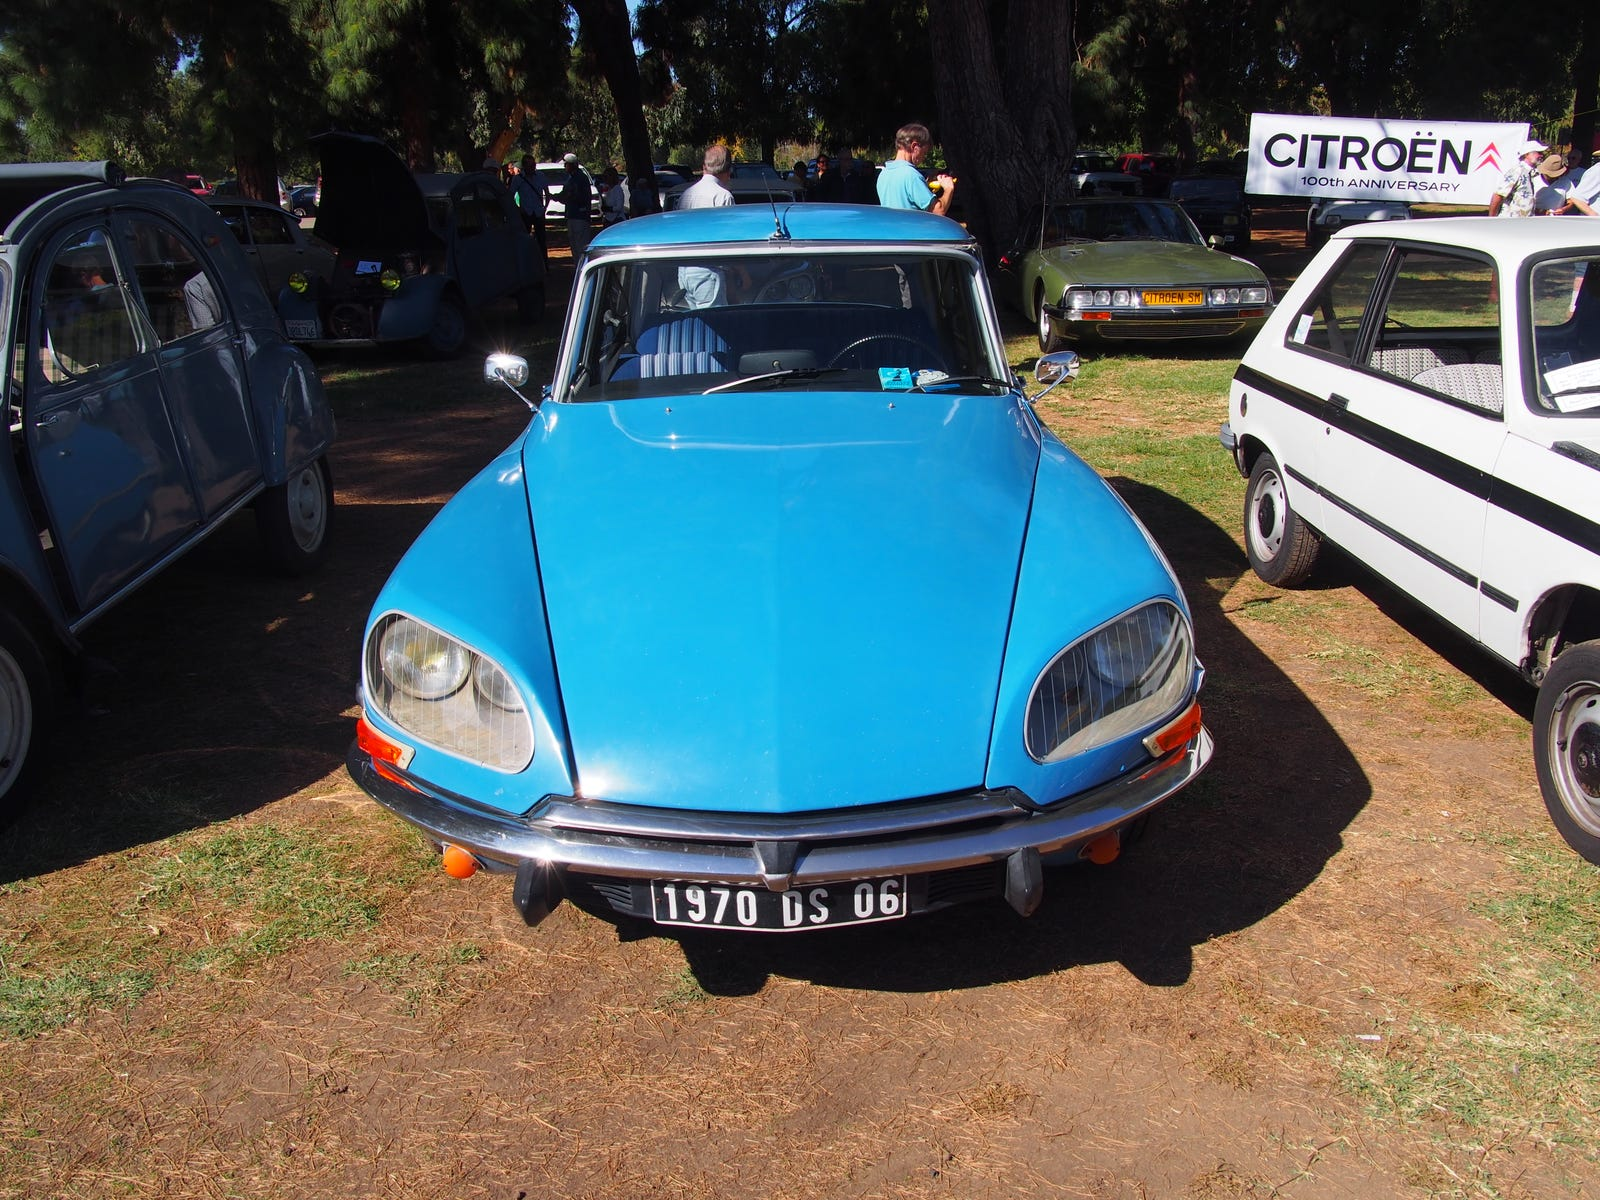 Awesome seats on this Citroën DS21.